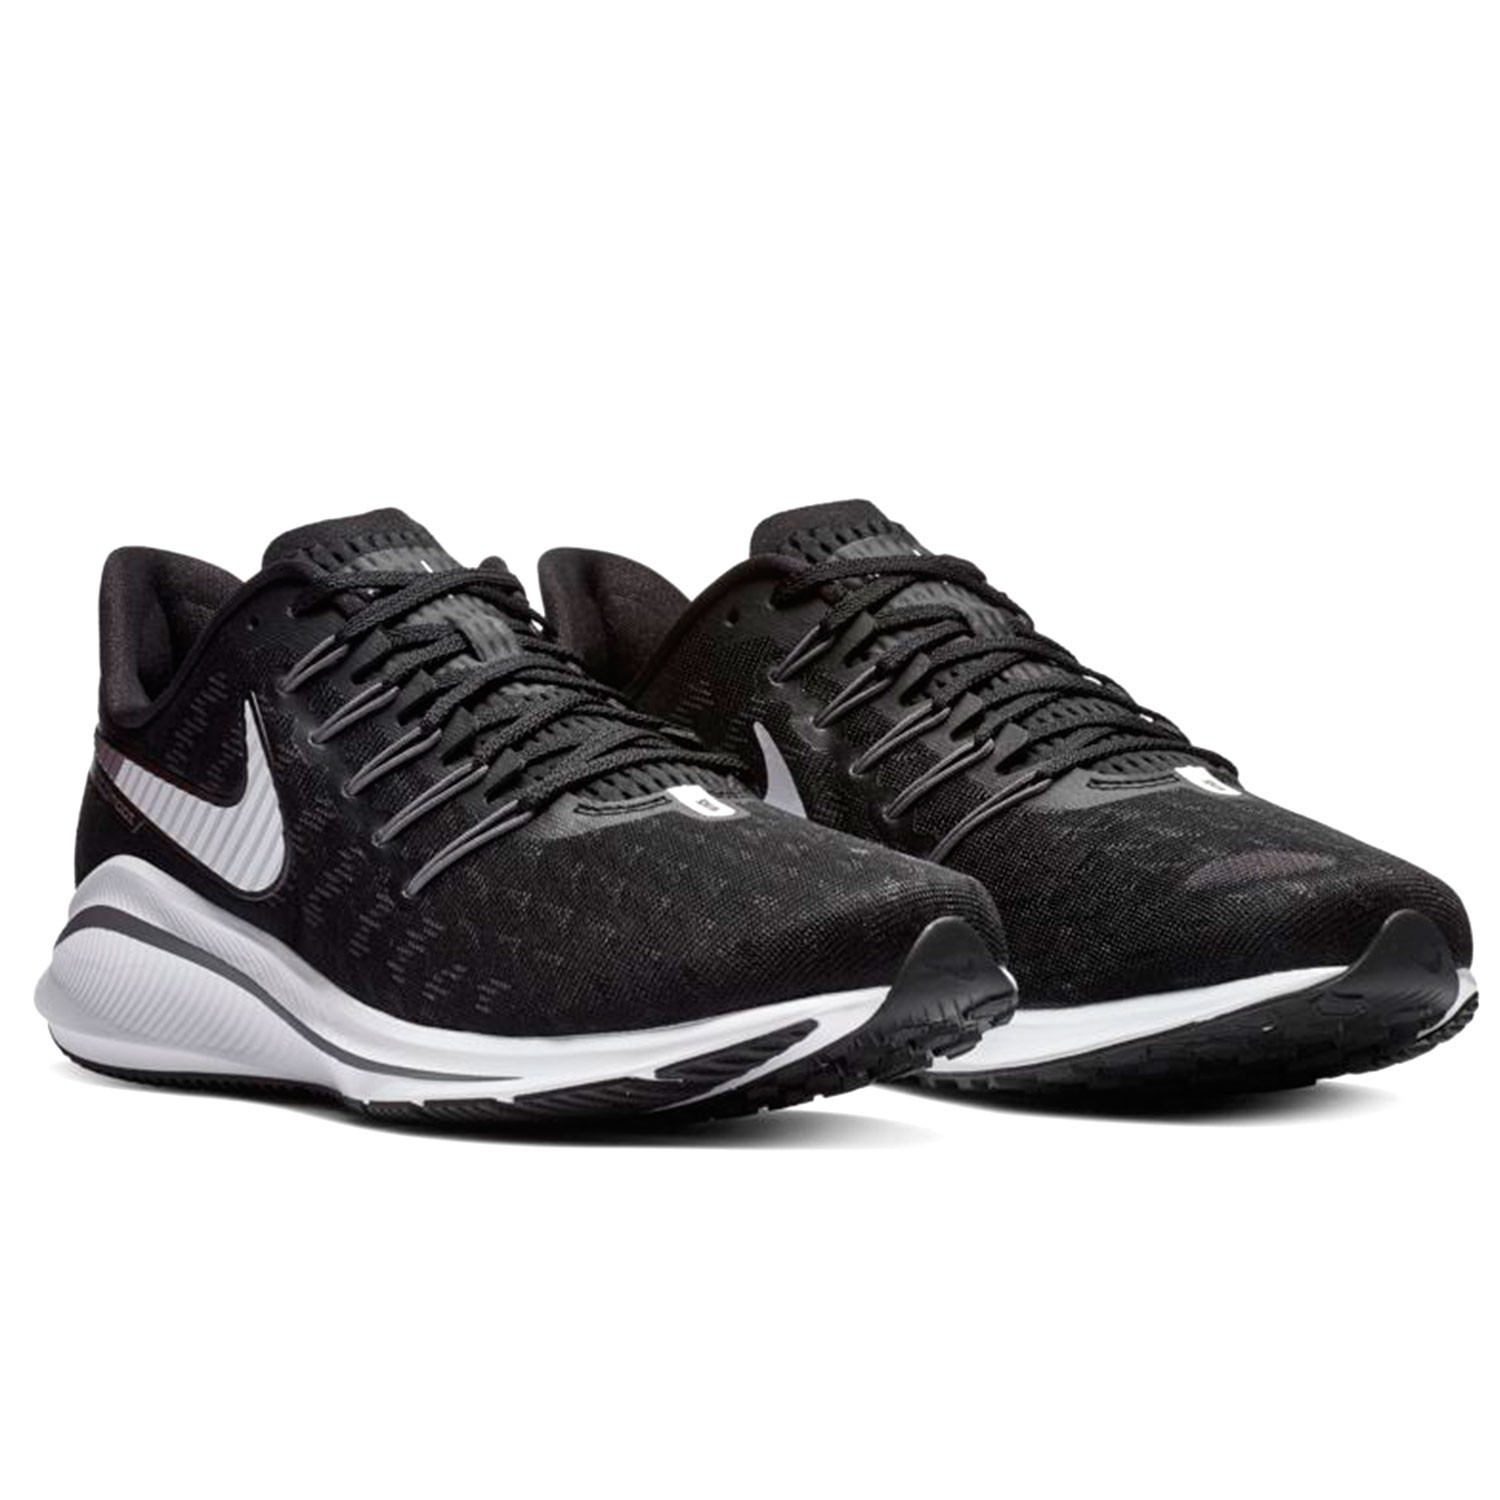 wholesale dealer f238d fa184 ... Nike Air Zoom Vomero 14 W ...